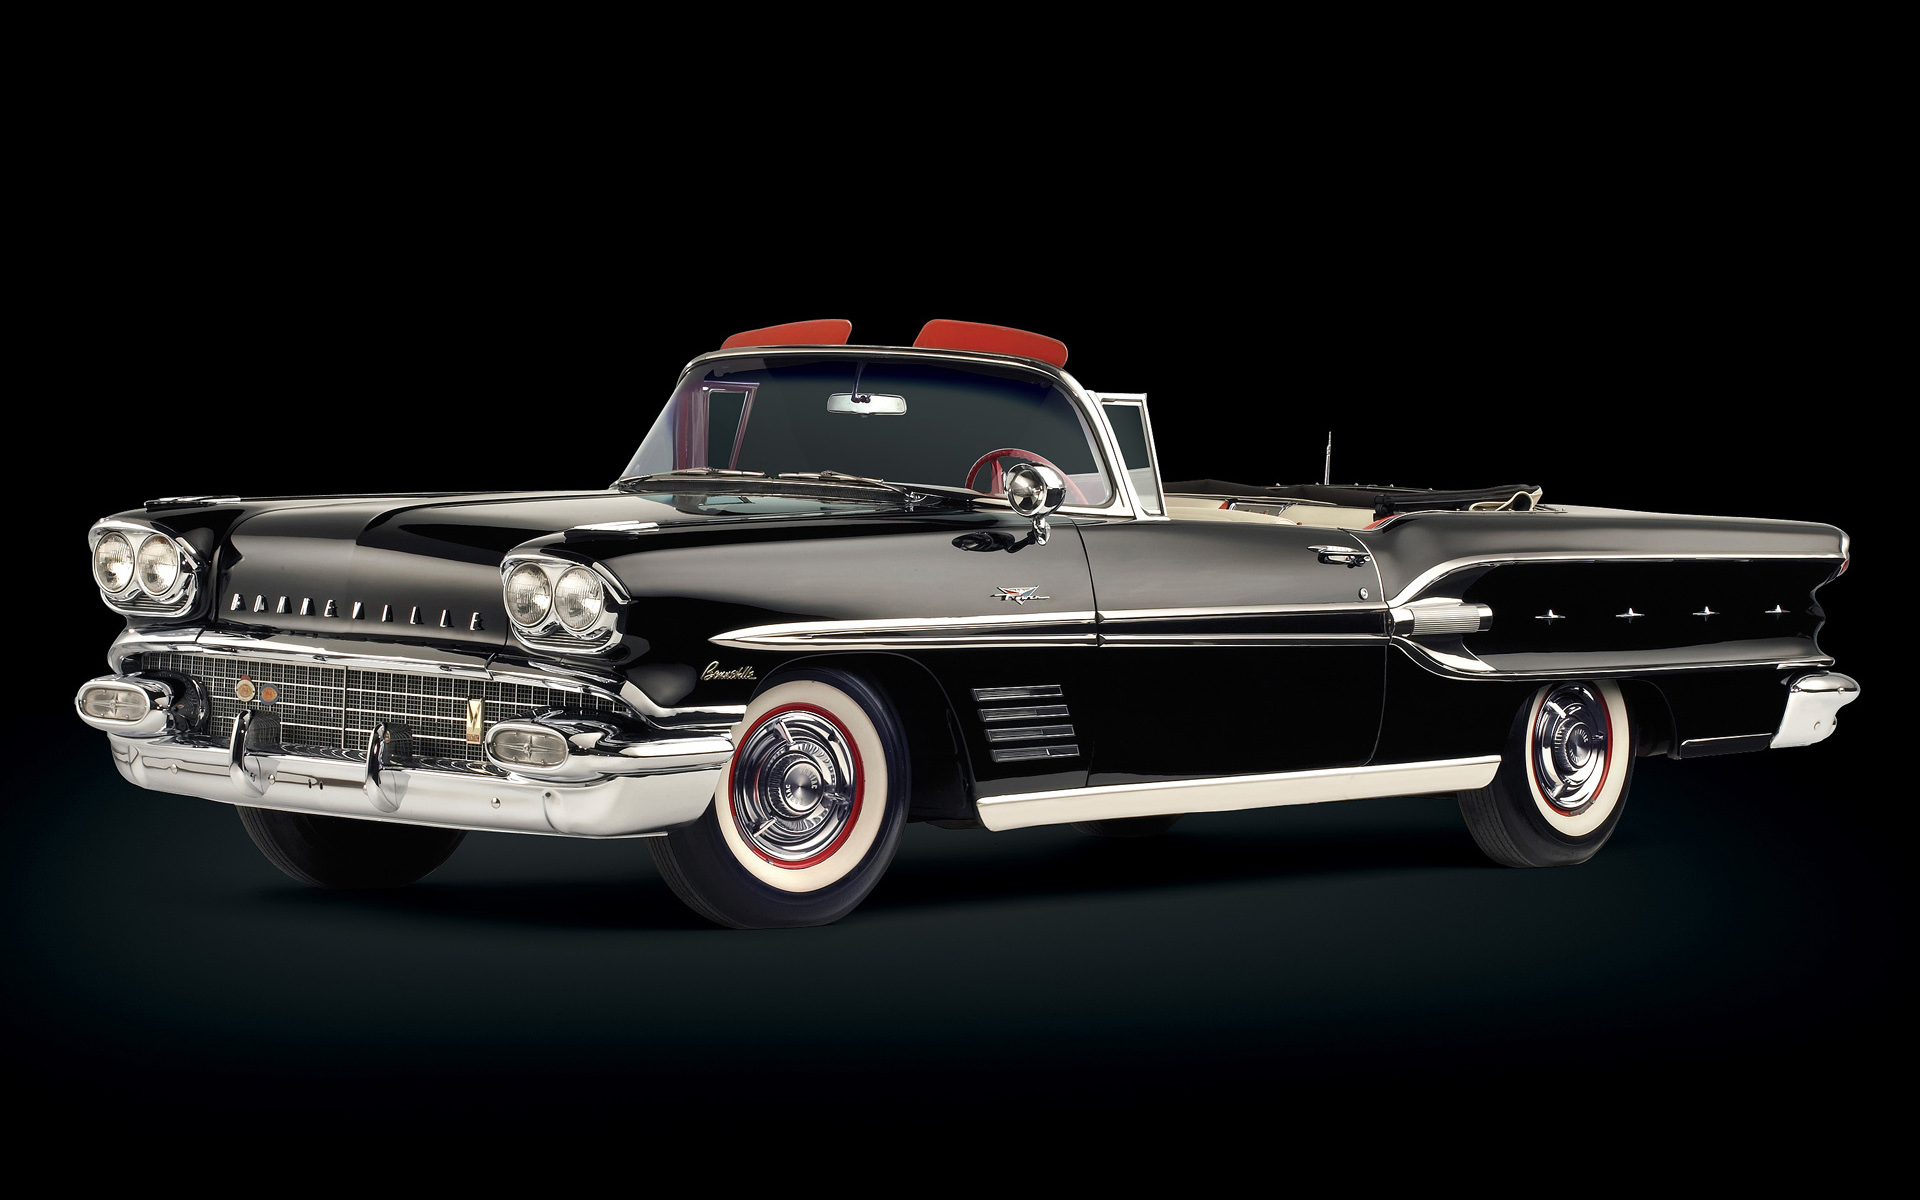 Cool Wallpapers Cars American Muscle 1 1958 Pontiac Bonneville Hd Wallpapers Background